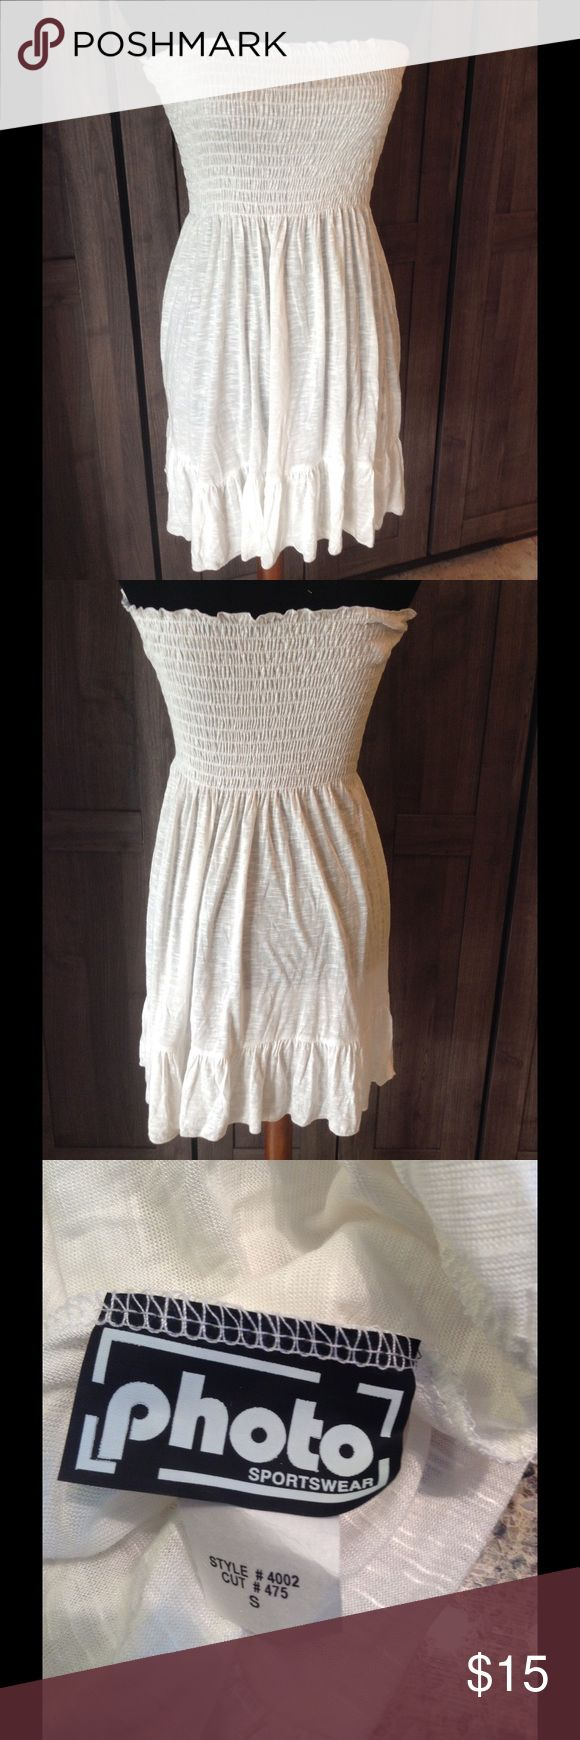 $7 clearance sale! Strapless dress New never worn. Strapless white dress or cover up. Dresses